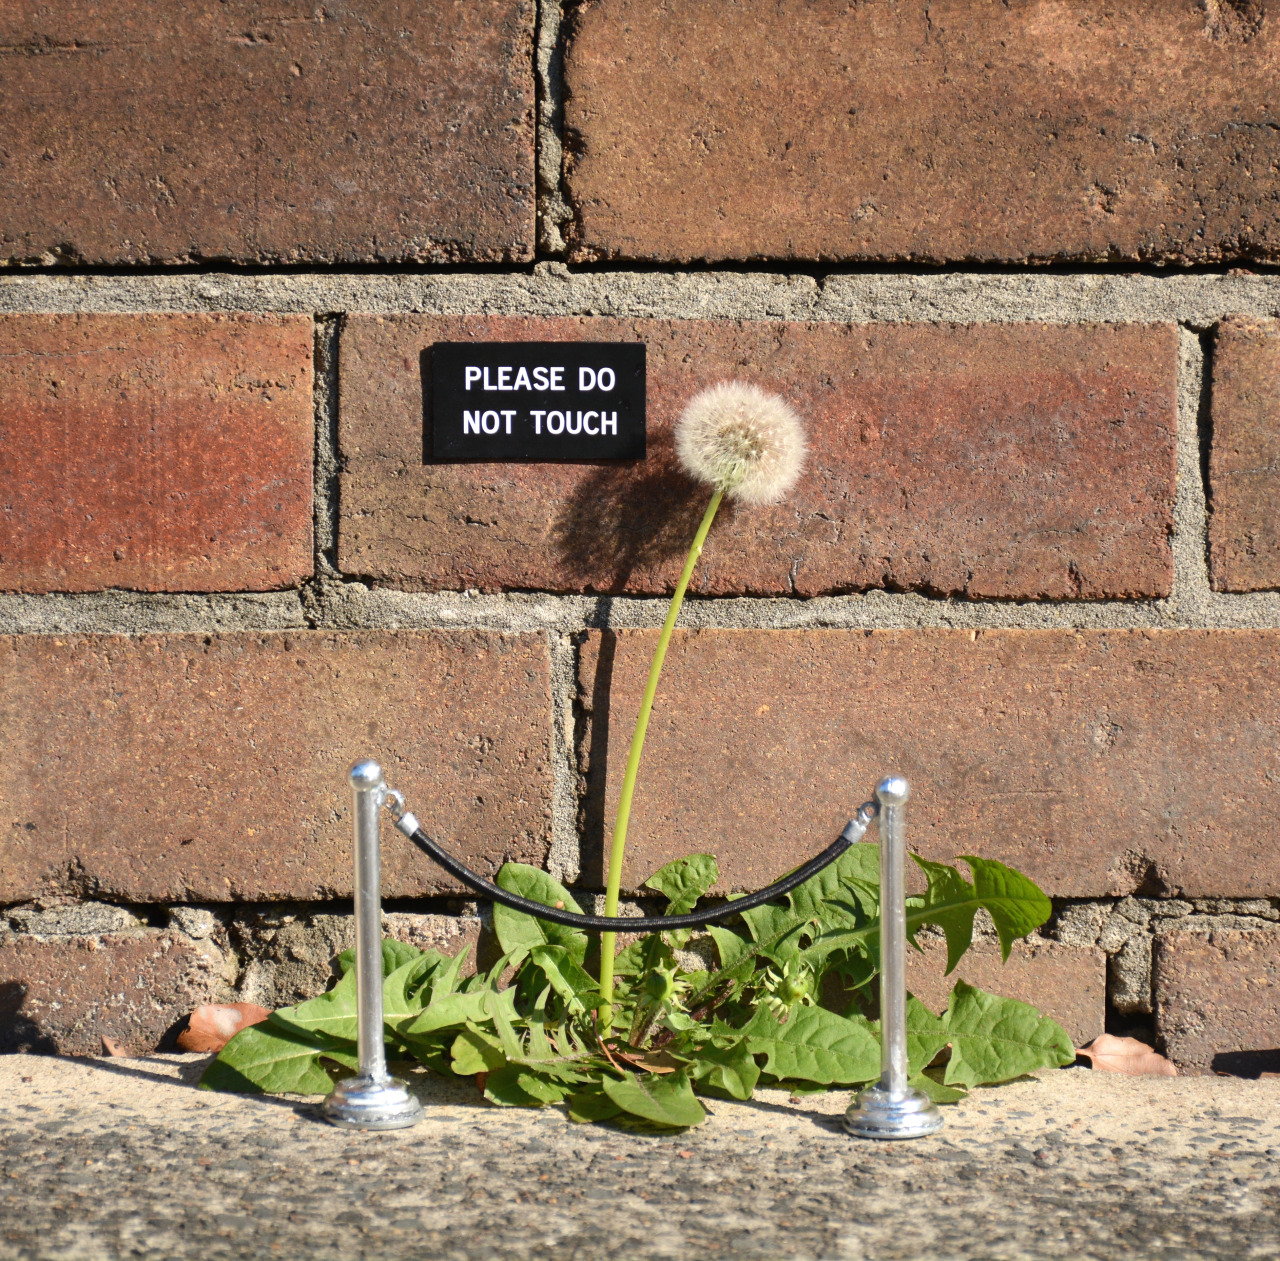 Interventions by artist Michael Pederson creates humorous and thoughtful moments in the noise of the urbanscape. (via Colossal)